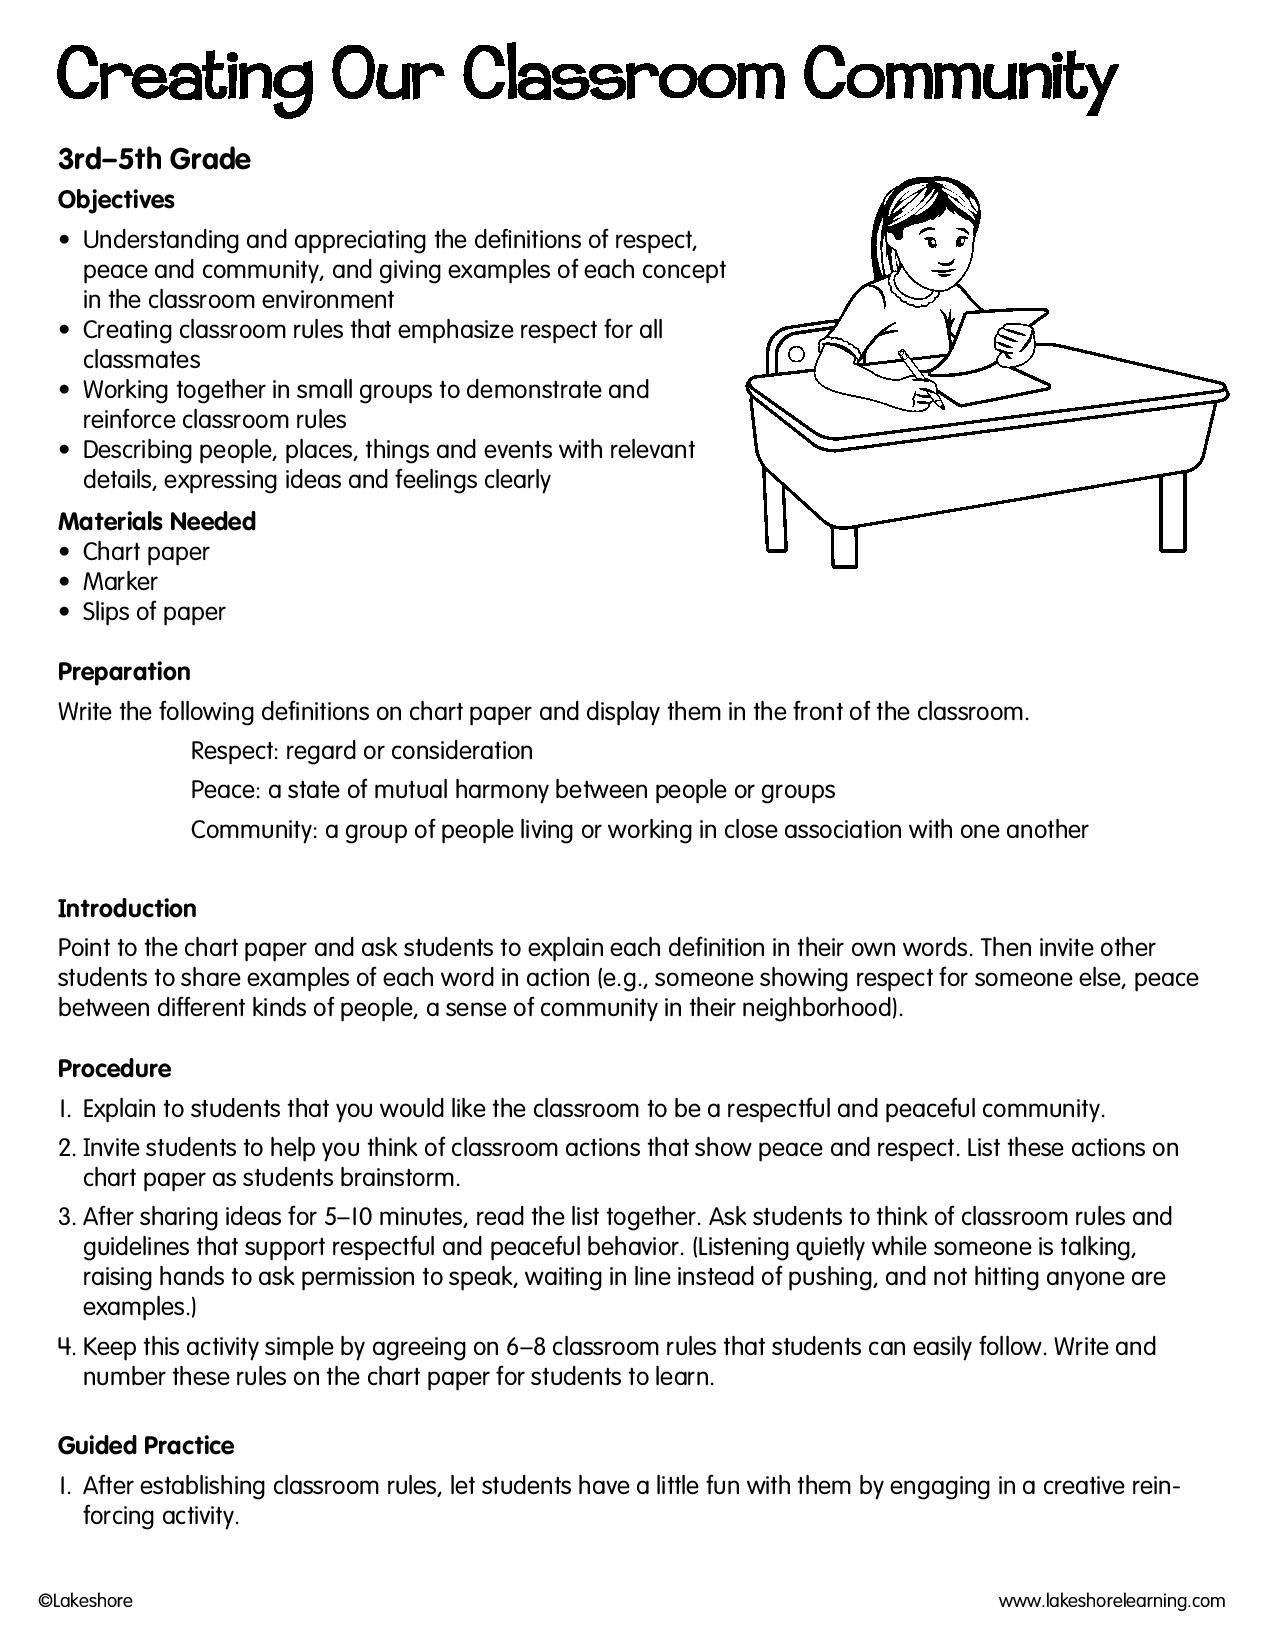 Creating Our Classroom Community Lessonplan Classroom Classroom Community Free Lesson Plans Classroom